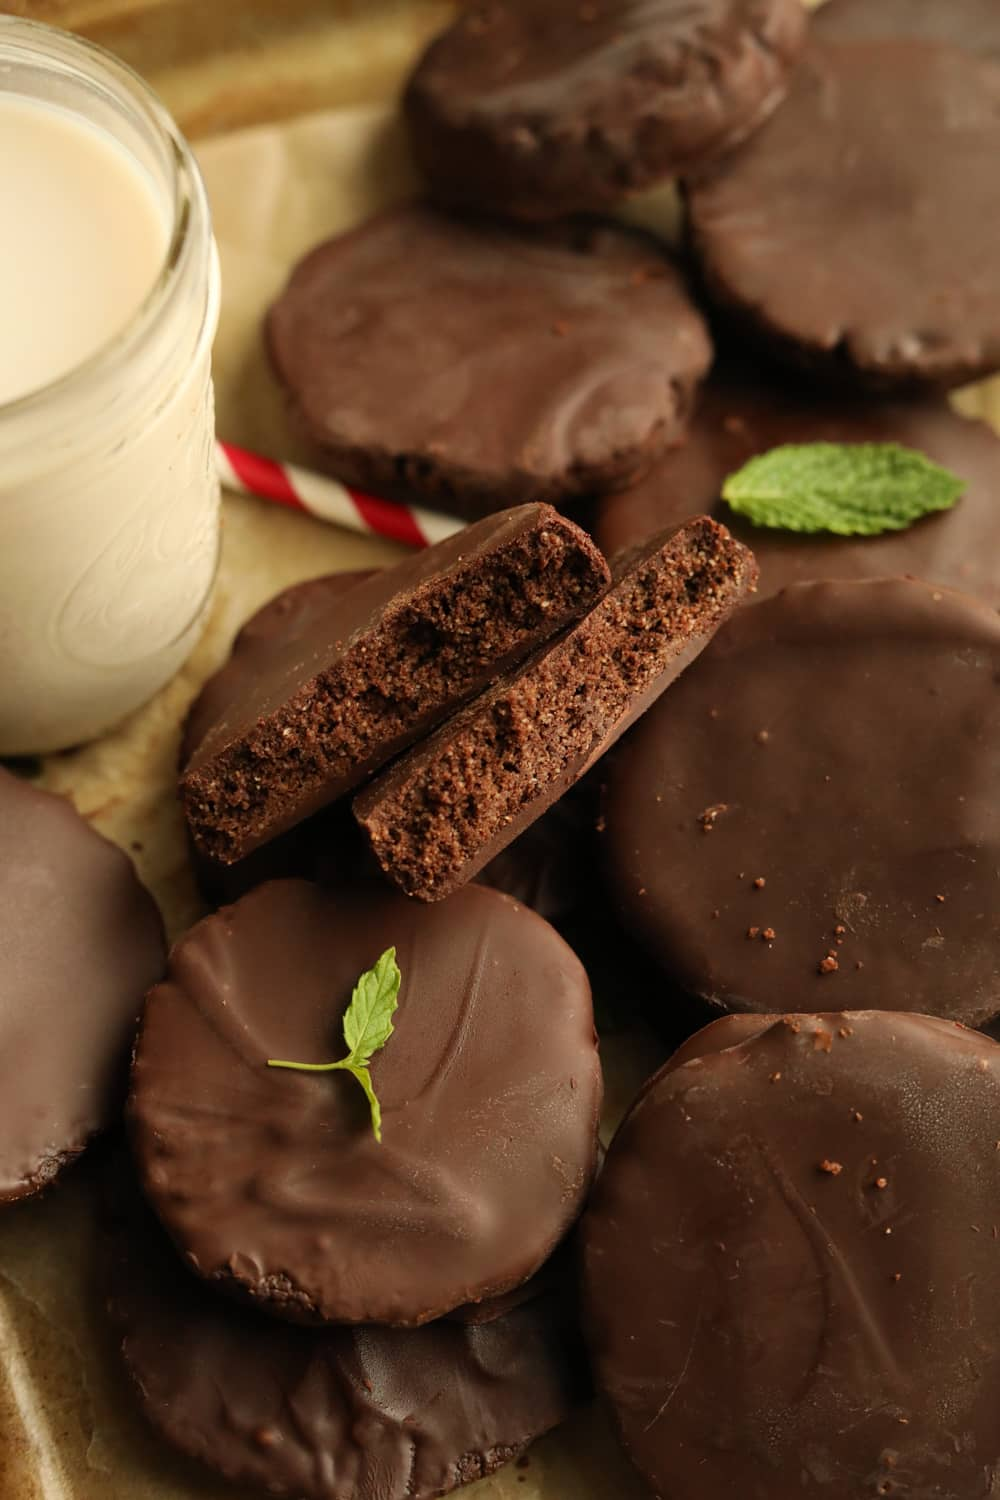 A chocolate cookie broken in half and stacked on other chocolate cookies. There's a glass of milk, a straw, and mint leaves next to the cookies.